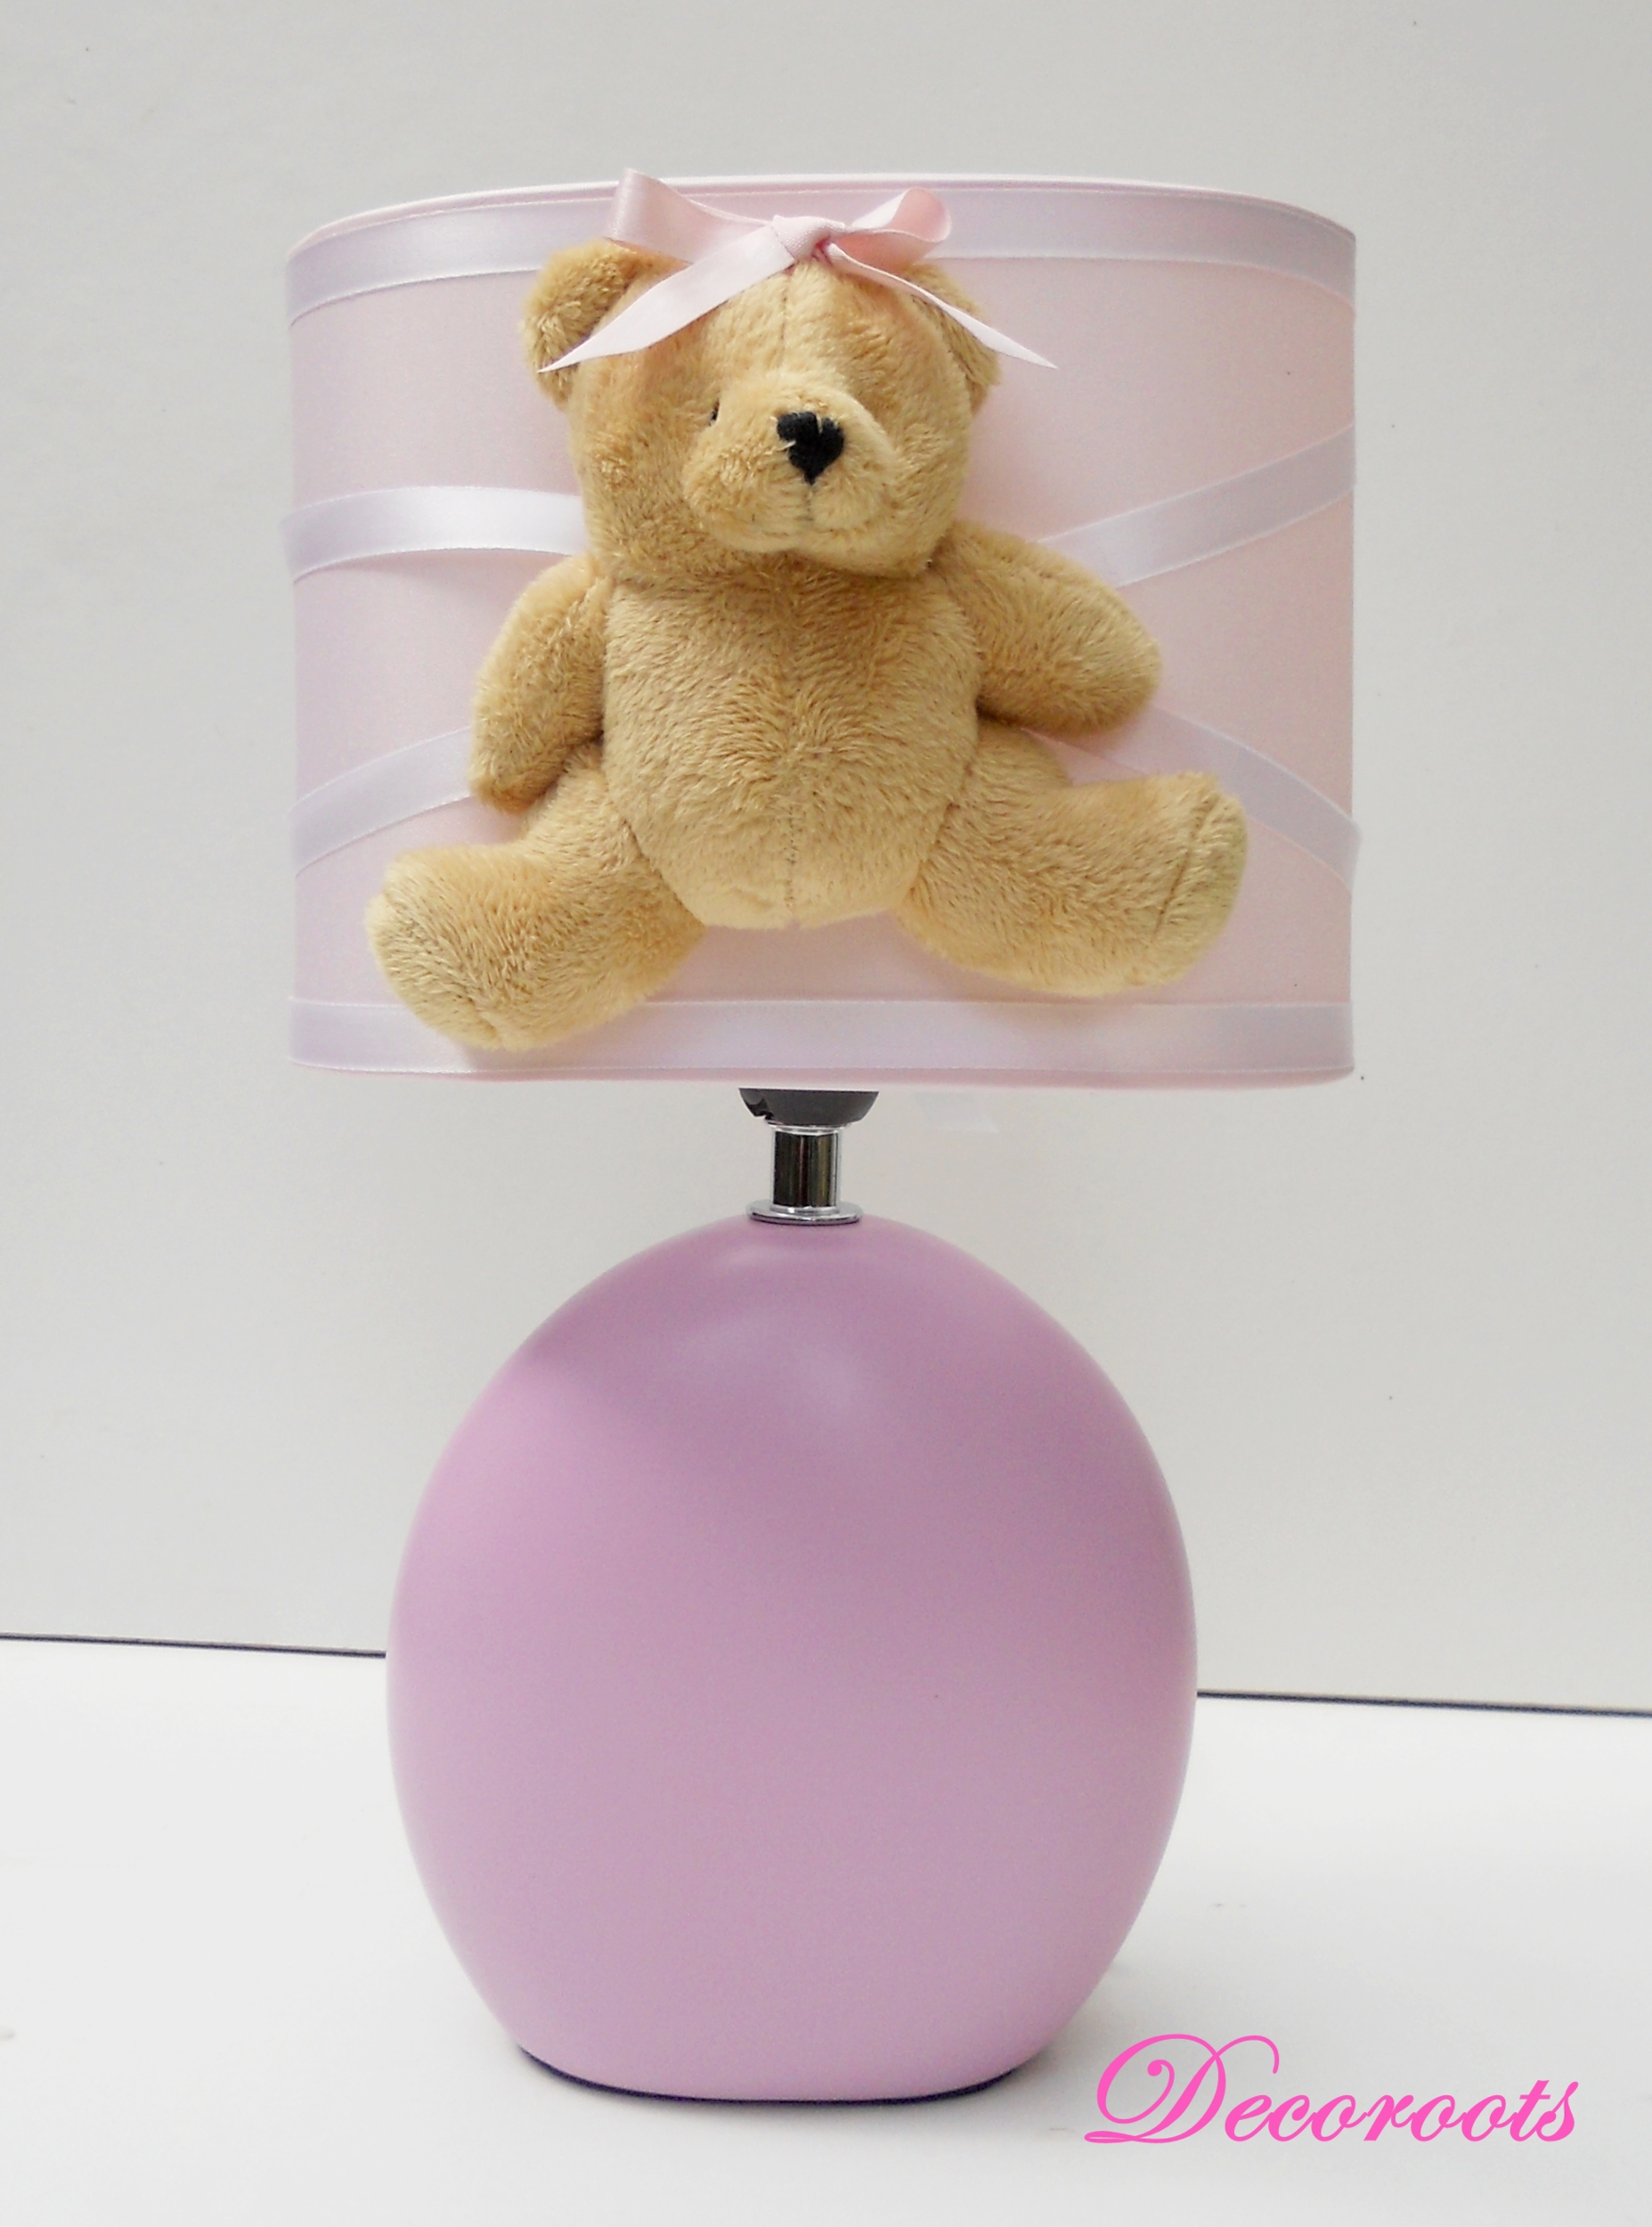 lampe de chevet fille ours rose et beige enfant b b luminaire enfant b b decoroots. Black Bedroom Furniture Sets. Home Design Ideas